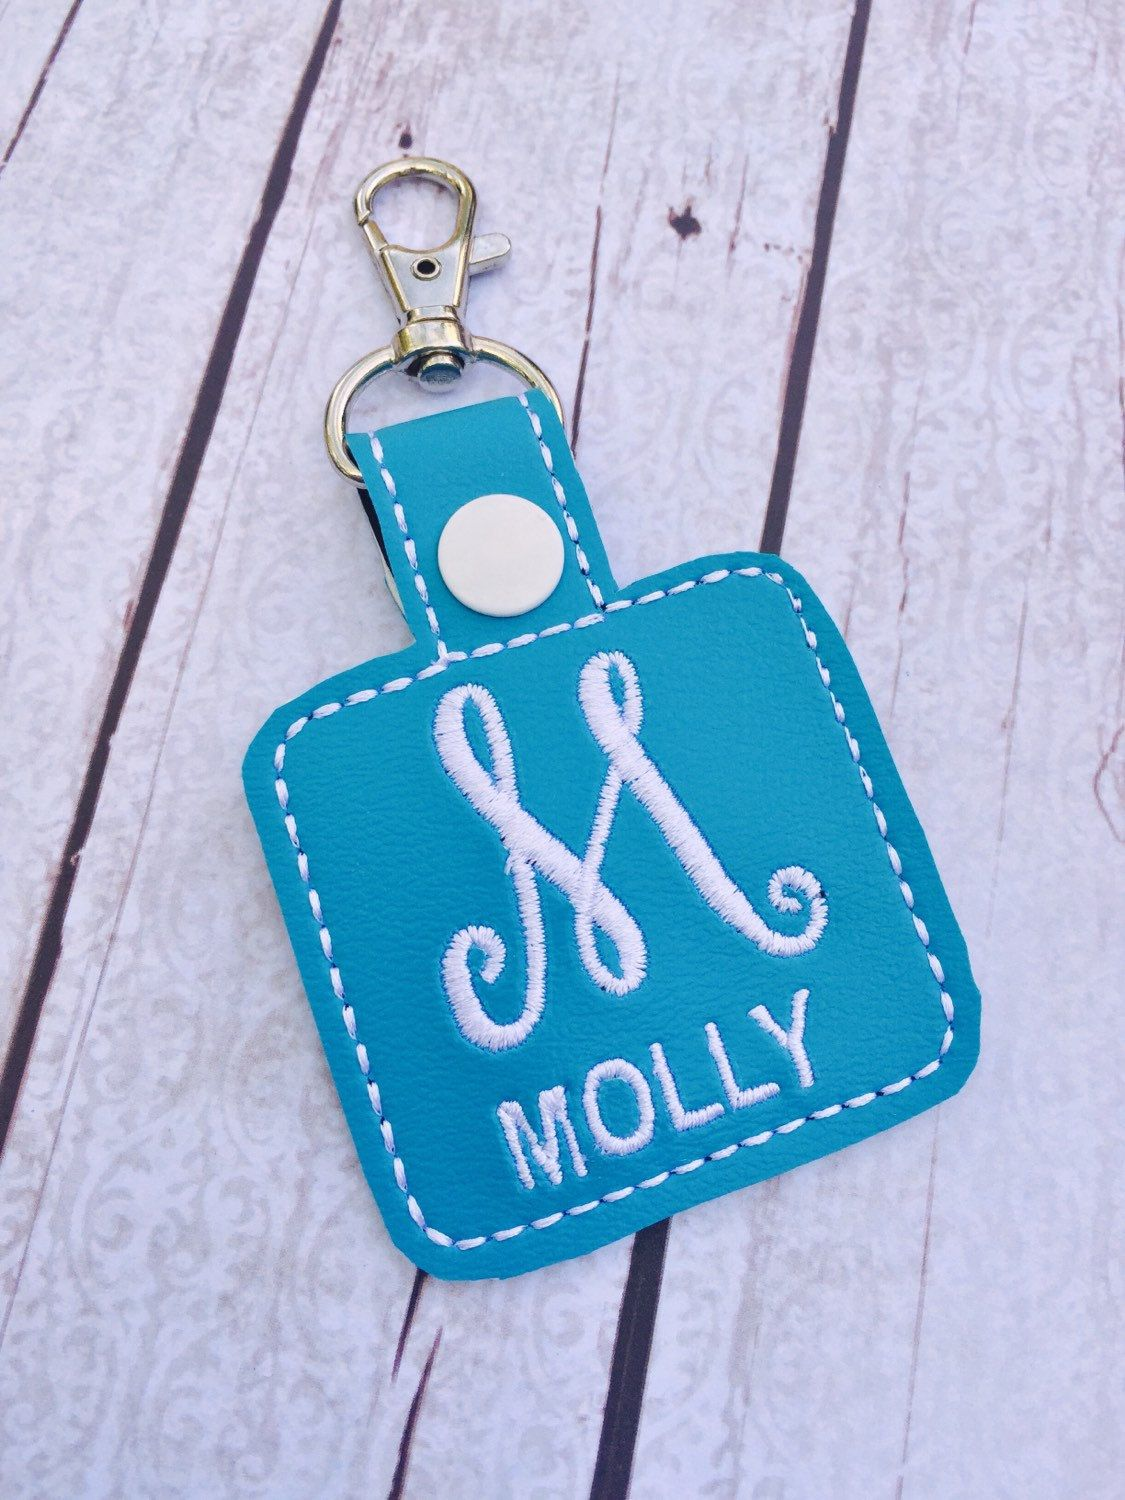 New to babymoon on Etsy: M is for Monogram clip on keyring -backpack clip on tag - personalized keyring - custom name bag tag -bagcharm - zipper pull turquoise white (14.99 USD)